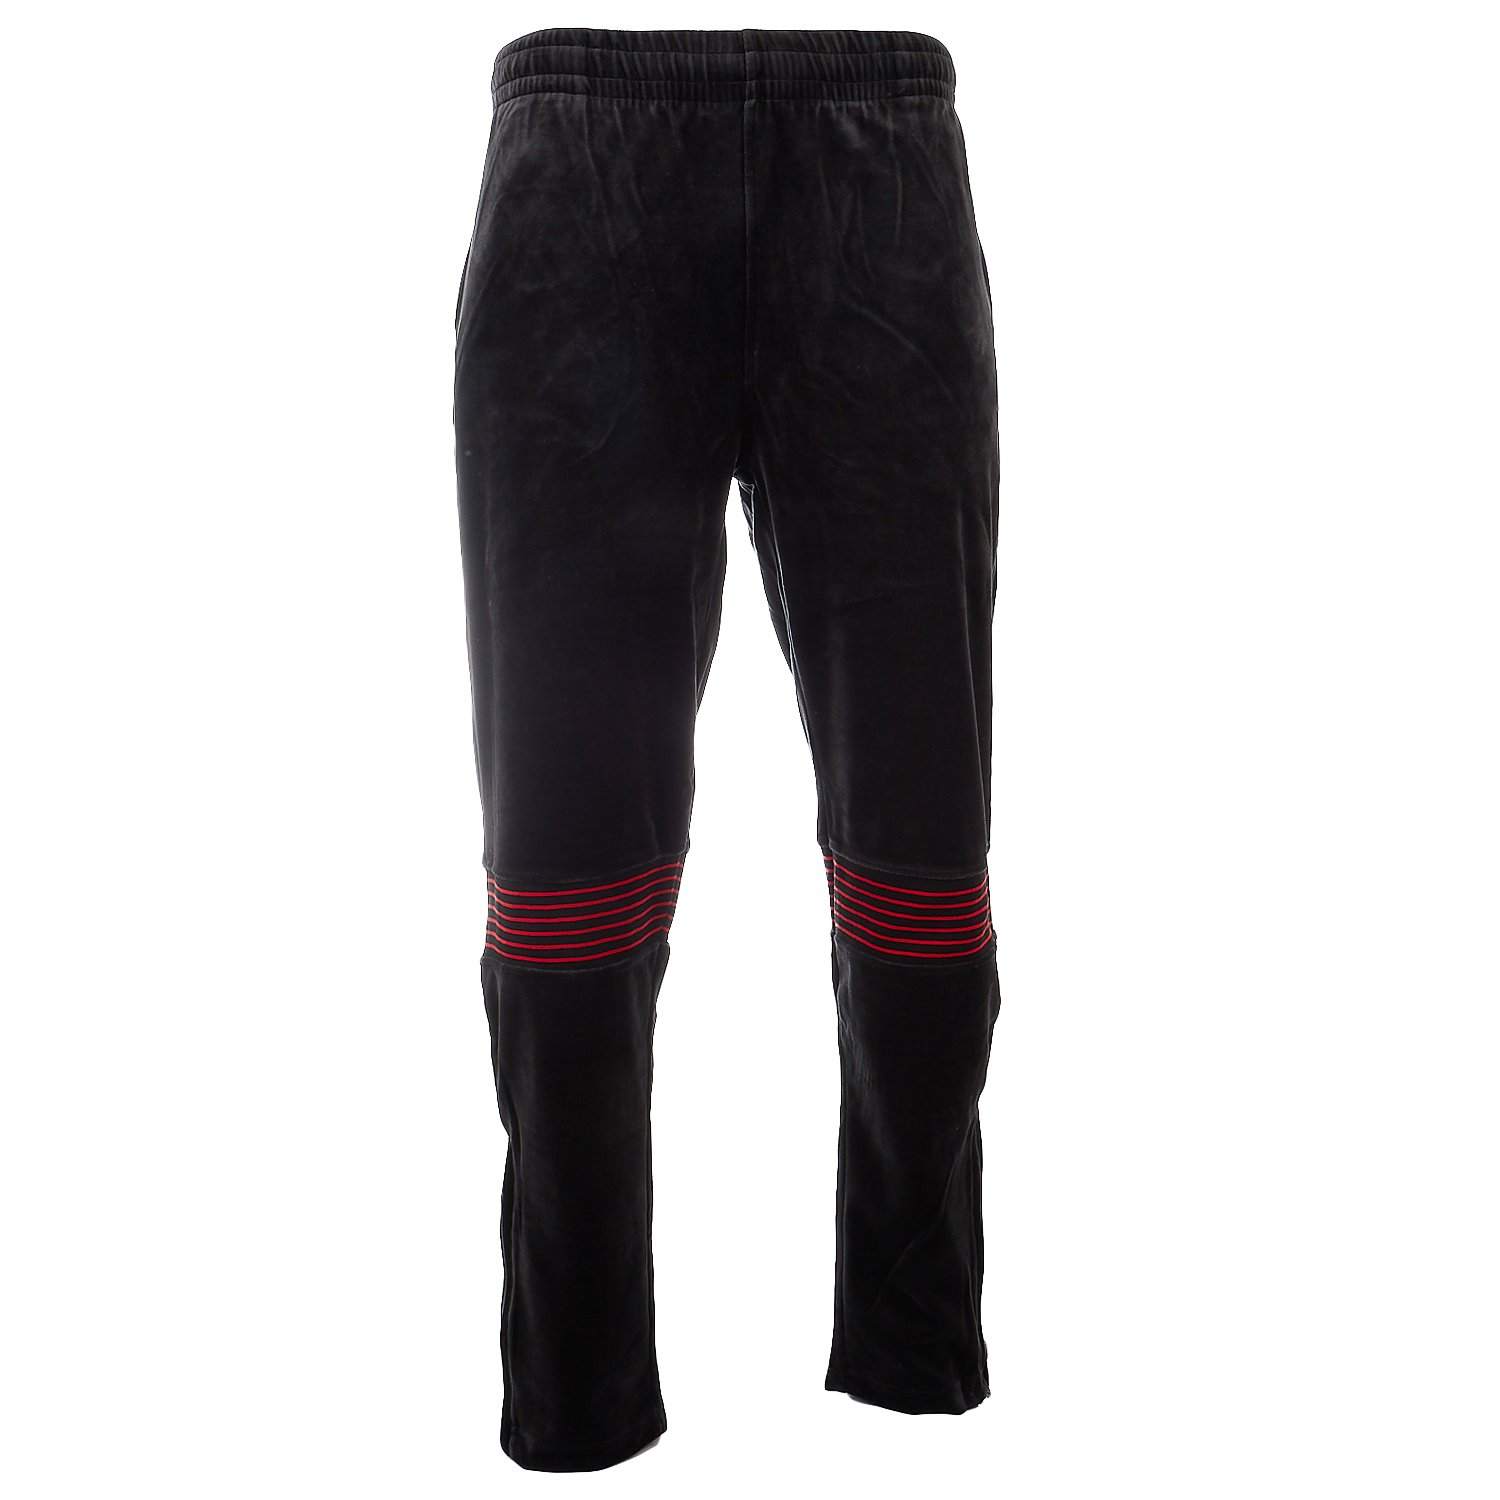 Fila PANTS メンズ B077DL5YMH M|Black/Chinese Red Black/Chinese Red M